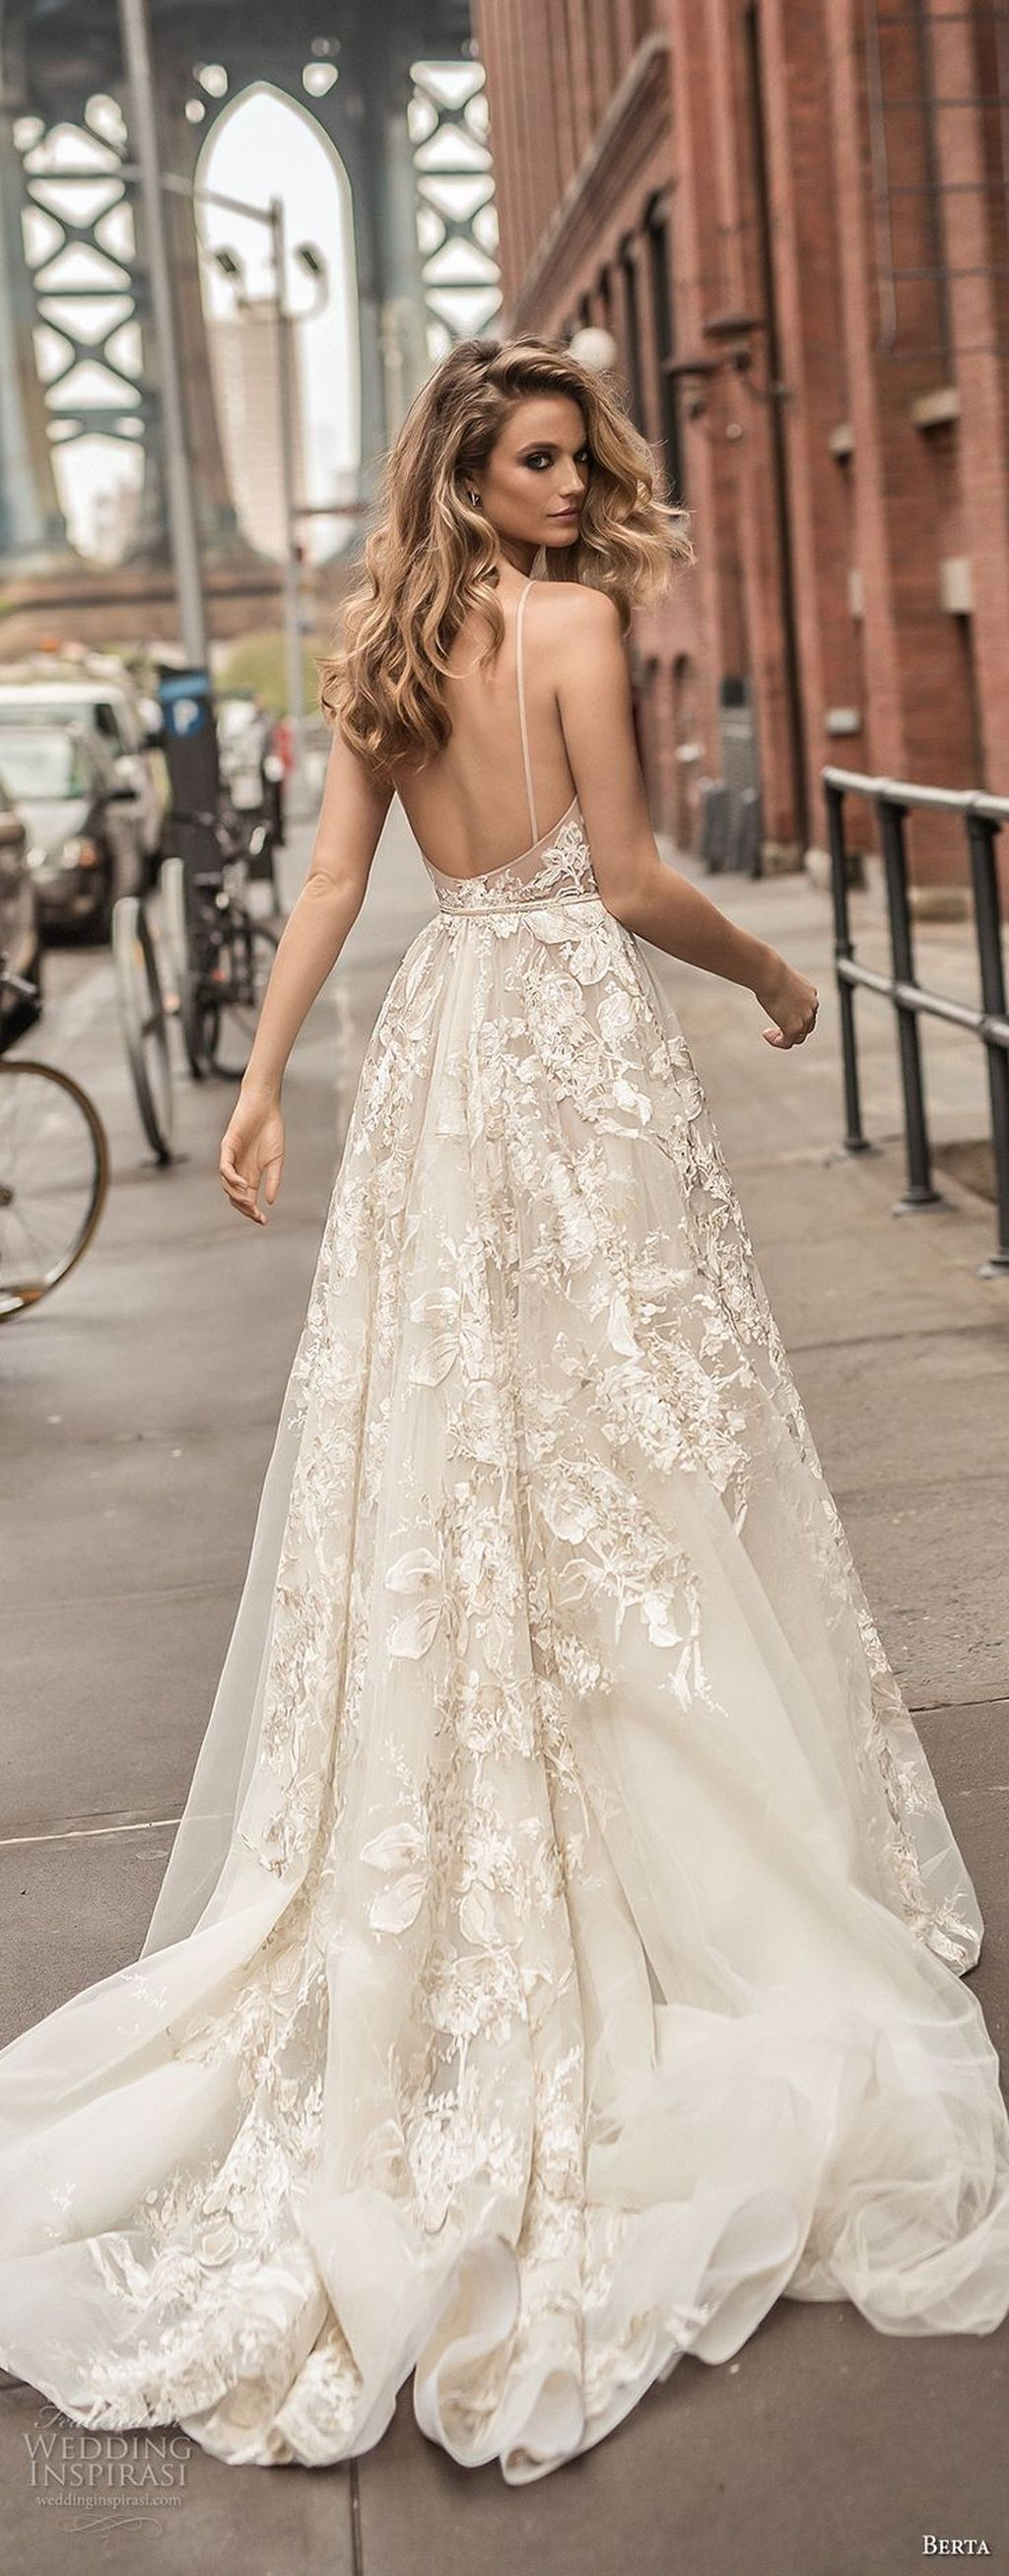 stylish open back wedding dresses ideas for spring pinterest